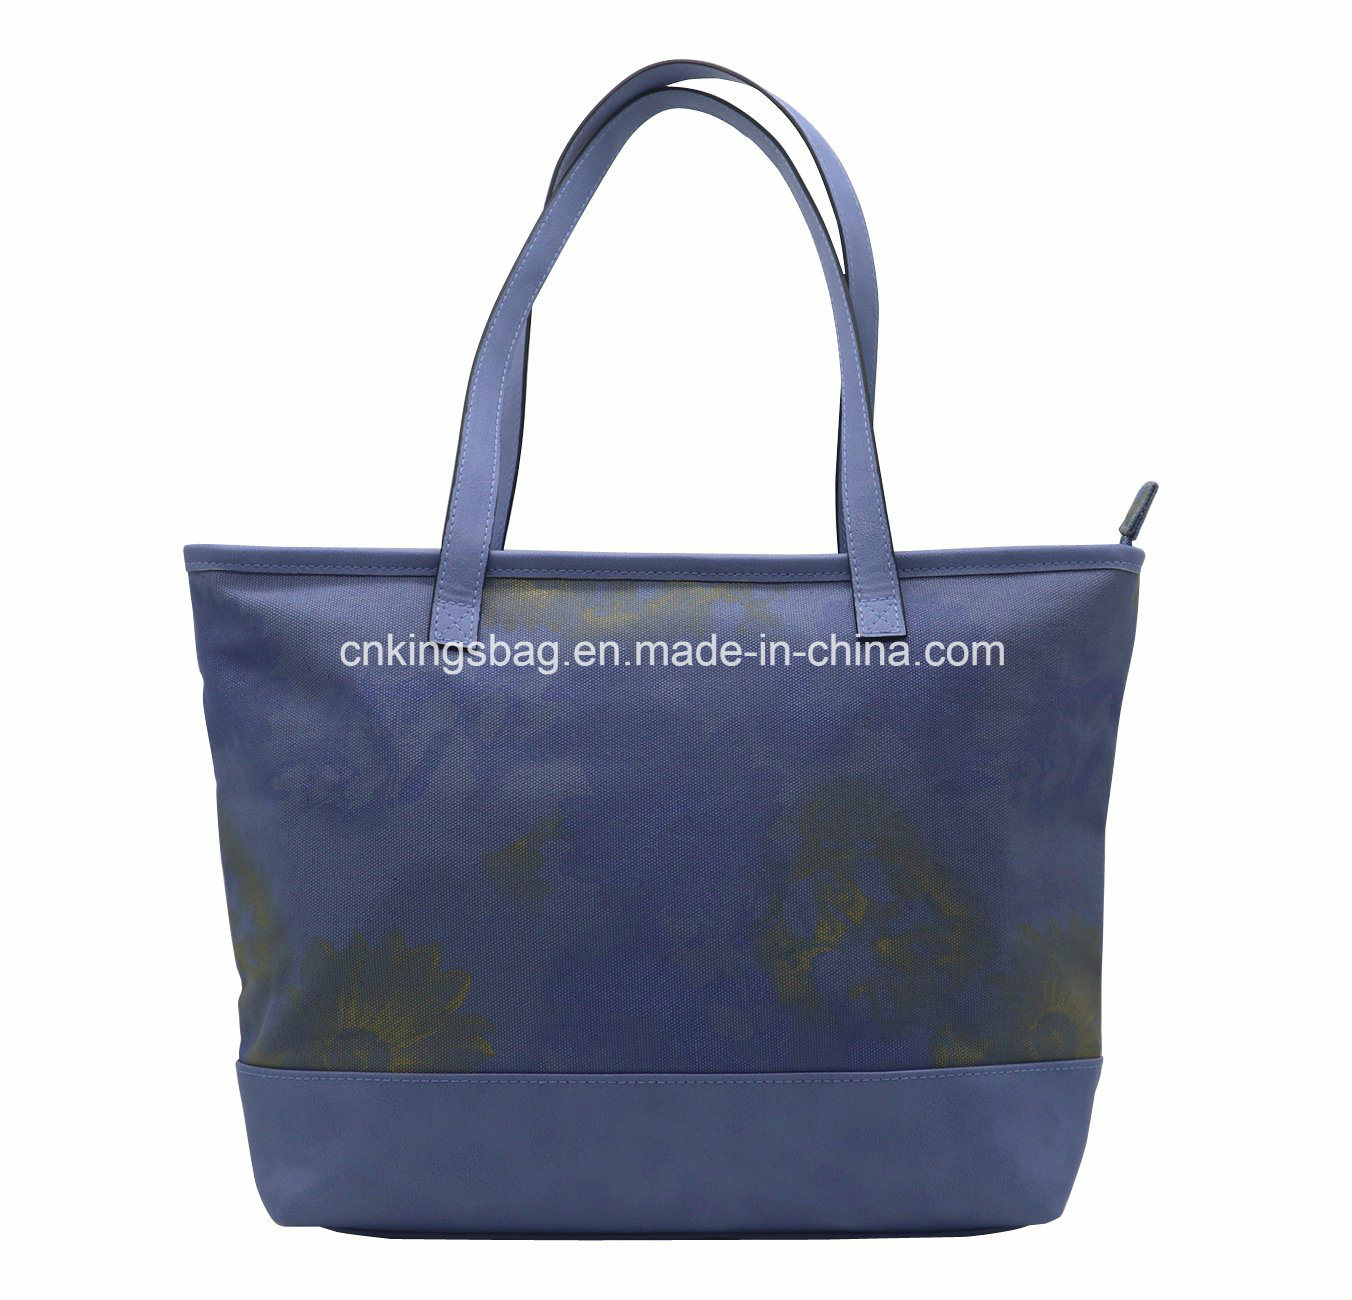 aeb2a263285 16oz Canvas Beauty Lady Tote Bag Colour with PU Combined Grey Blue Colour